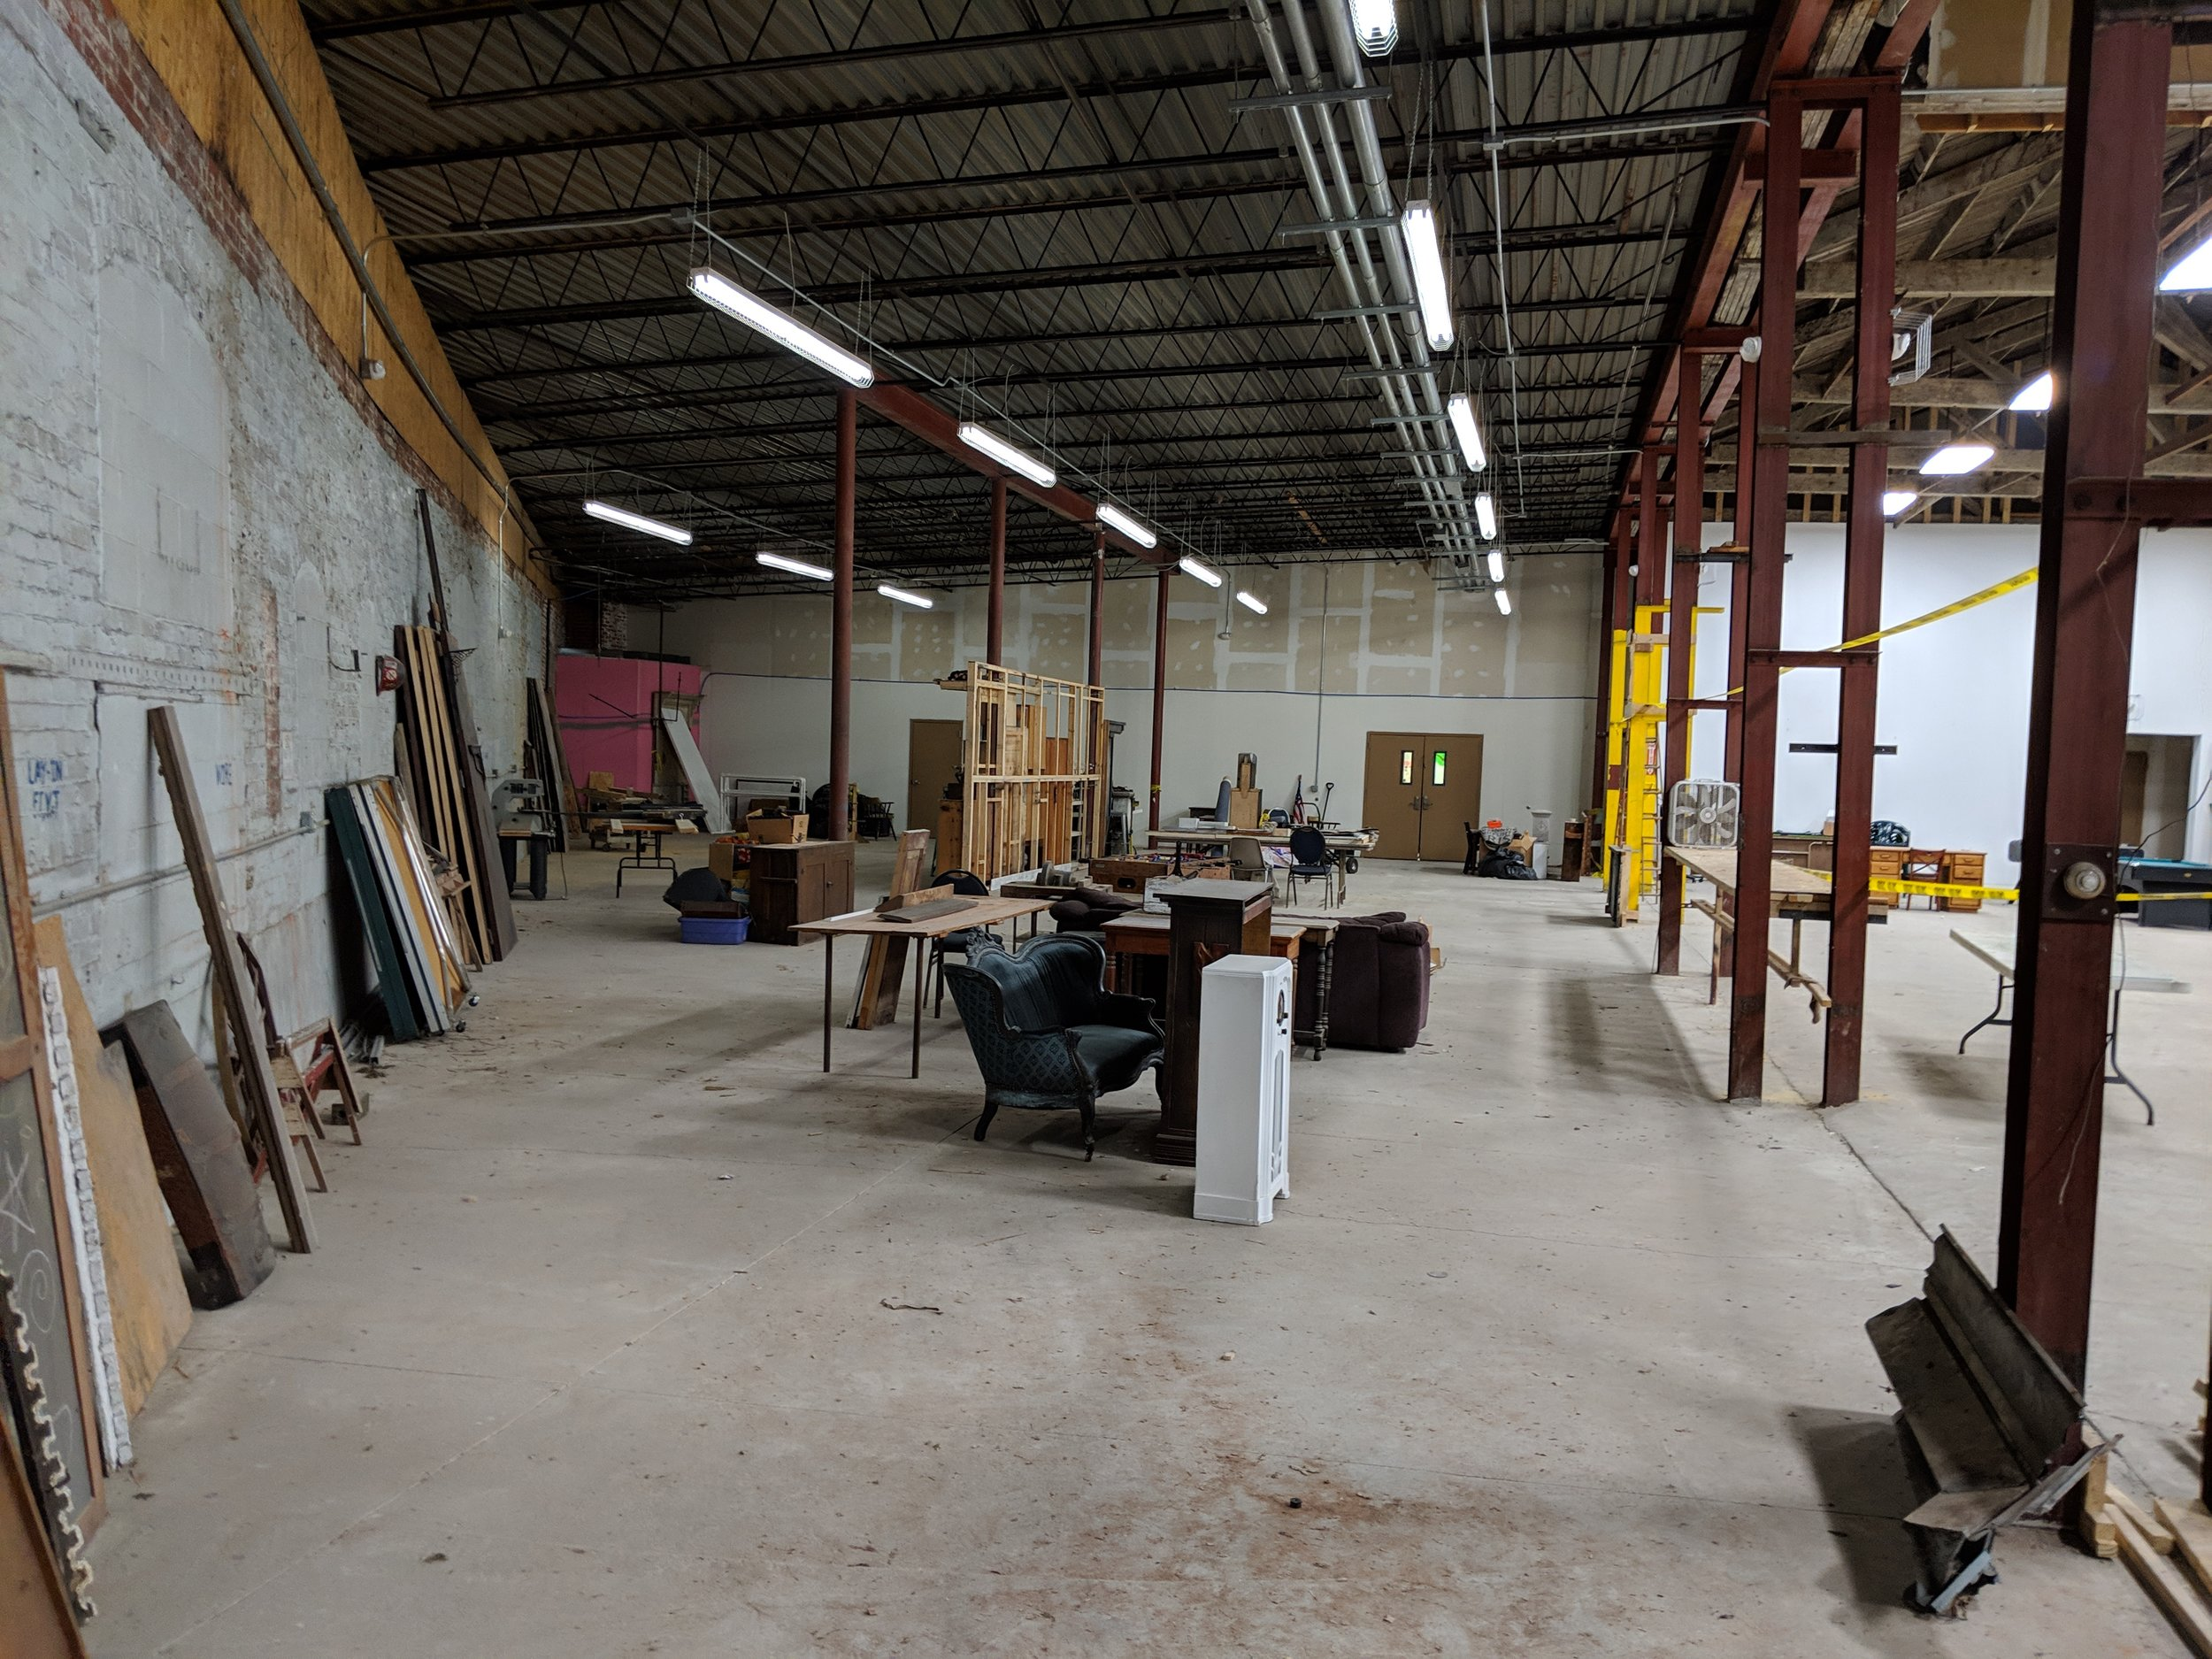 Picture provided by Boys & Girls club of Washington County, Future indoor activity space